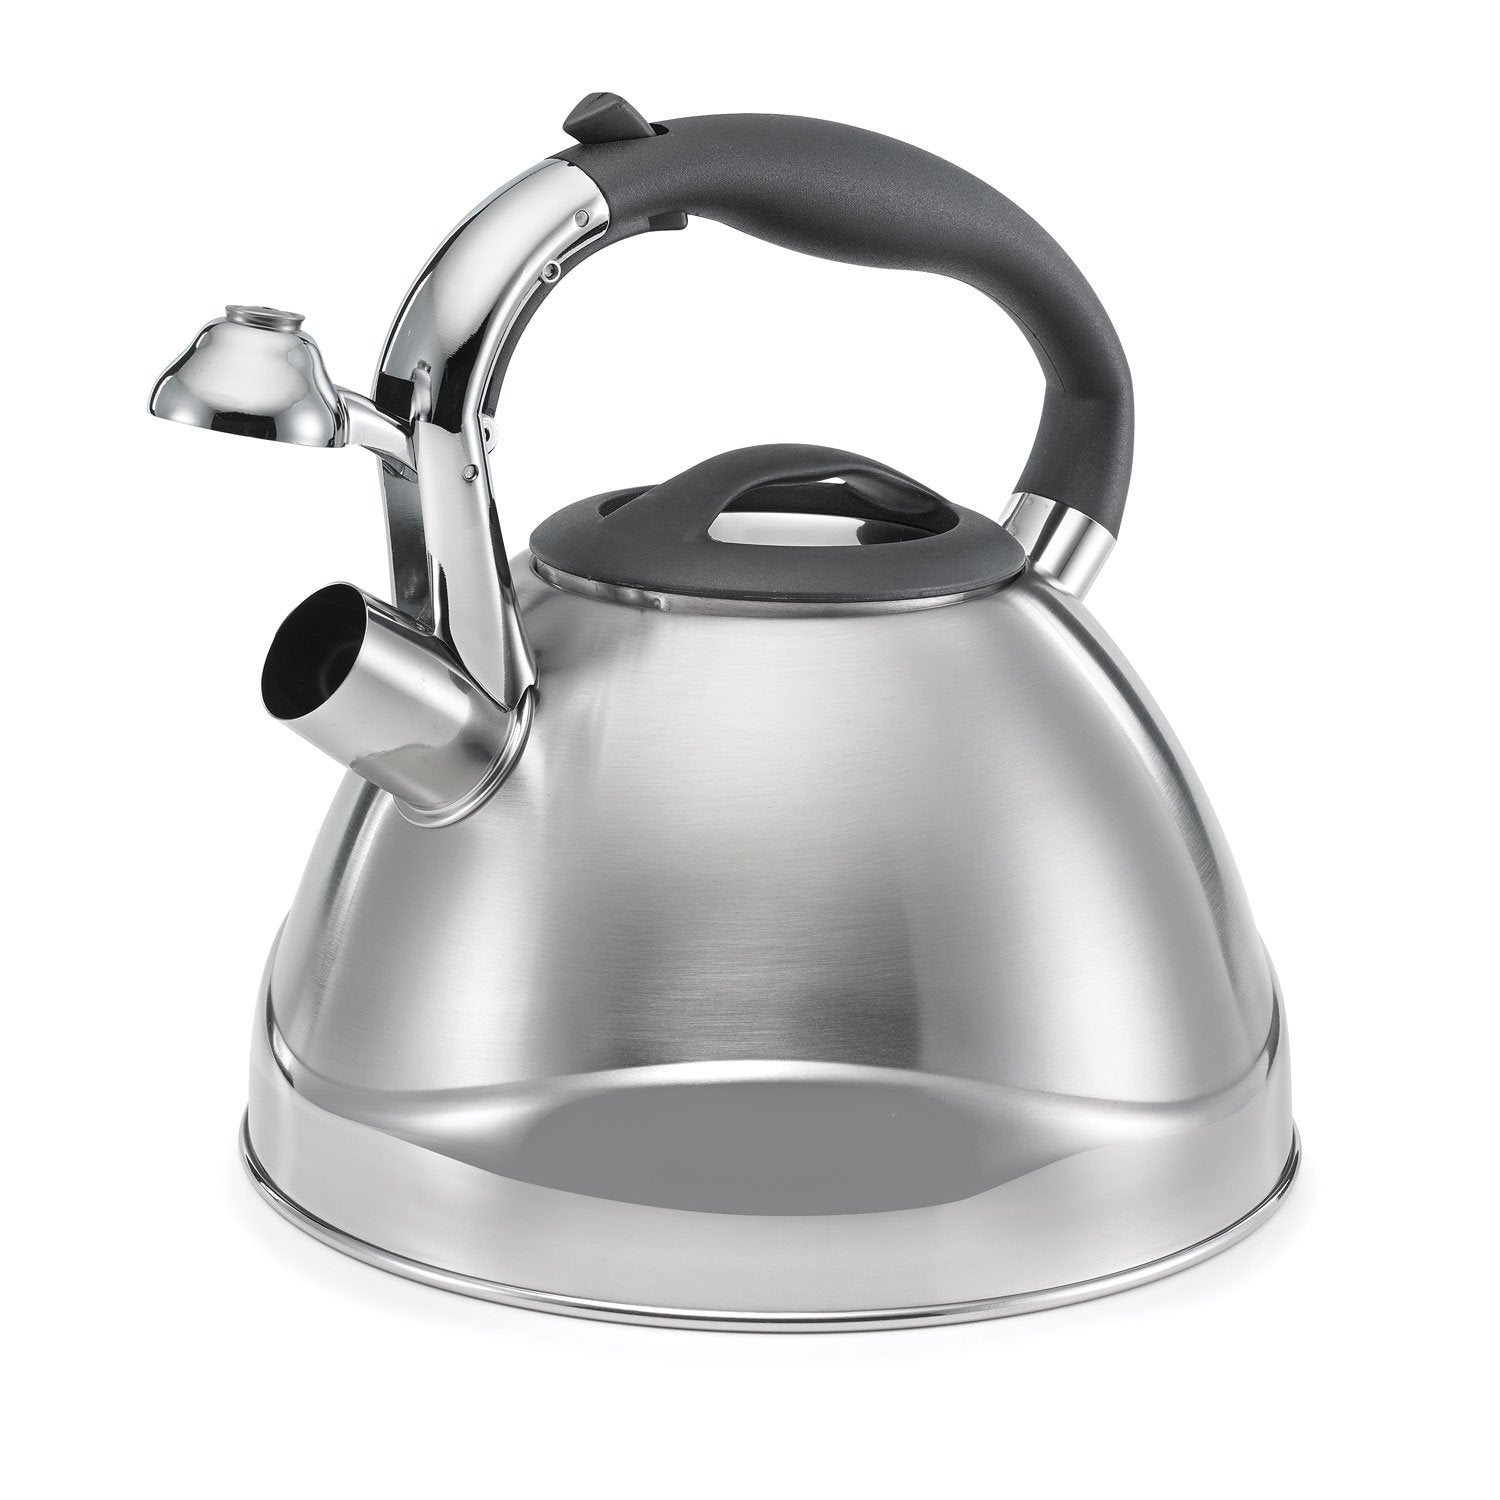 Retro Tea Kettle - Large